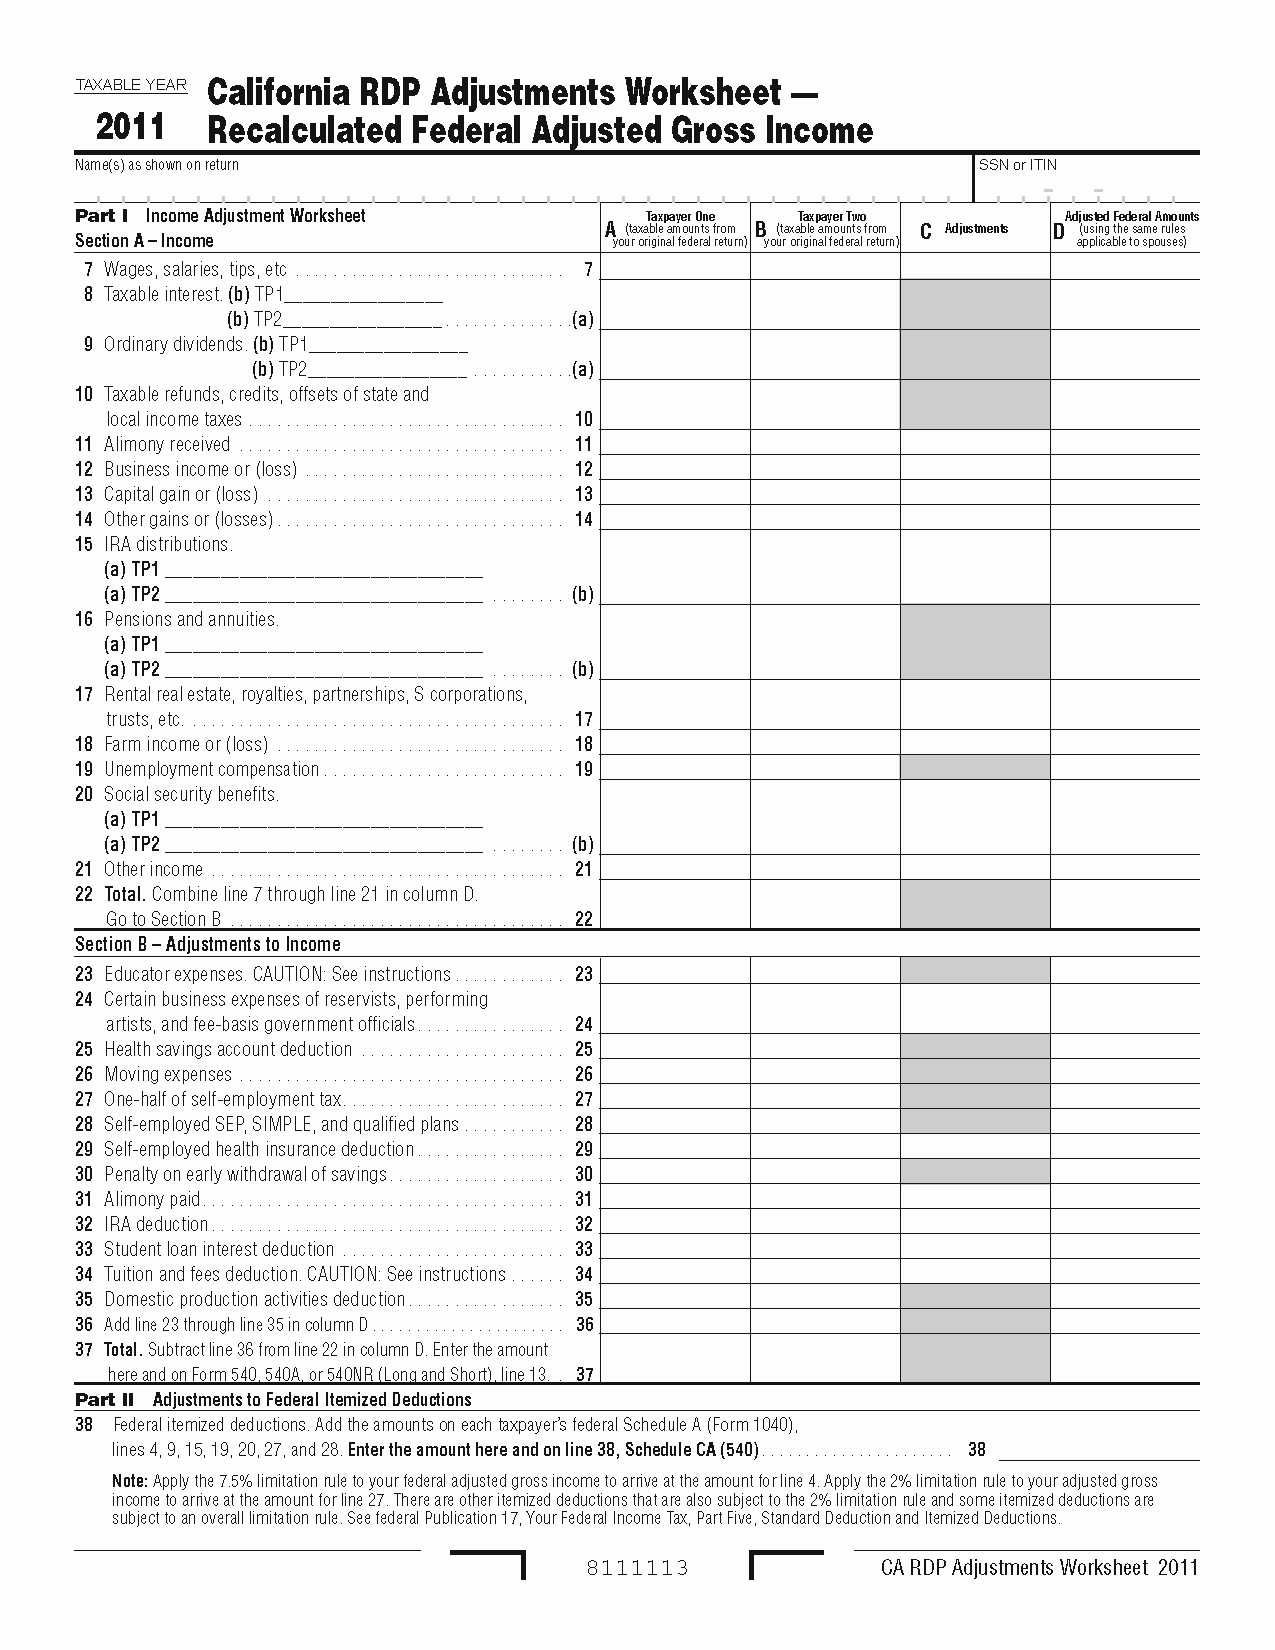 Itemized Deductions Worksheet Also Federal Itemized Deduction Worksheet Kidz Activities